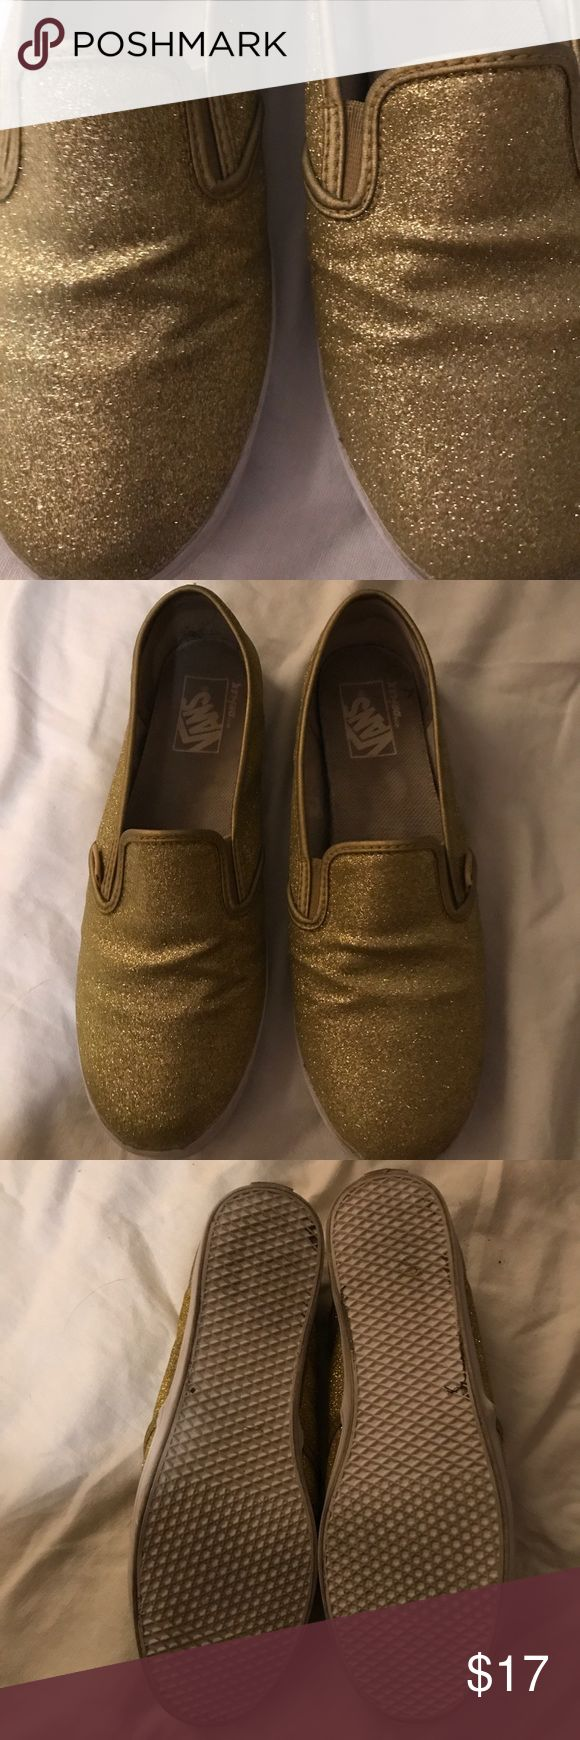 Gold sparkly glitter vans size 8 These are super comfy but alas, I don't have a lot of reason to wear gold glitter shoes. It's sad!please take them from me and click your heels twice like Dorothy! Vans Shoes